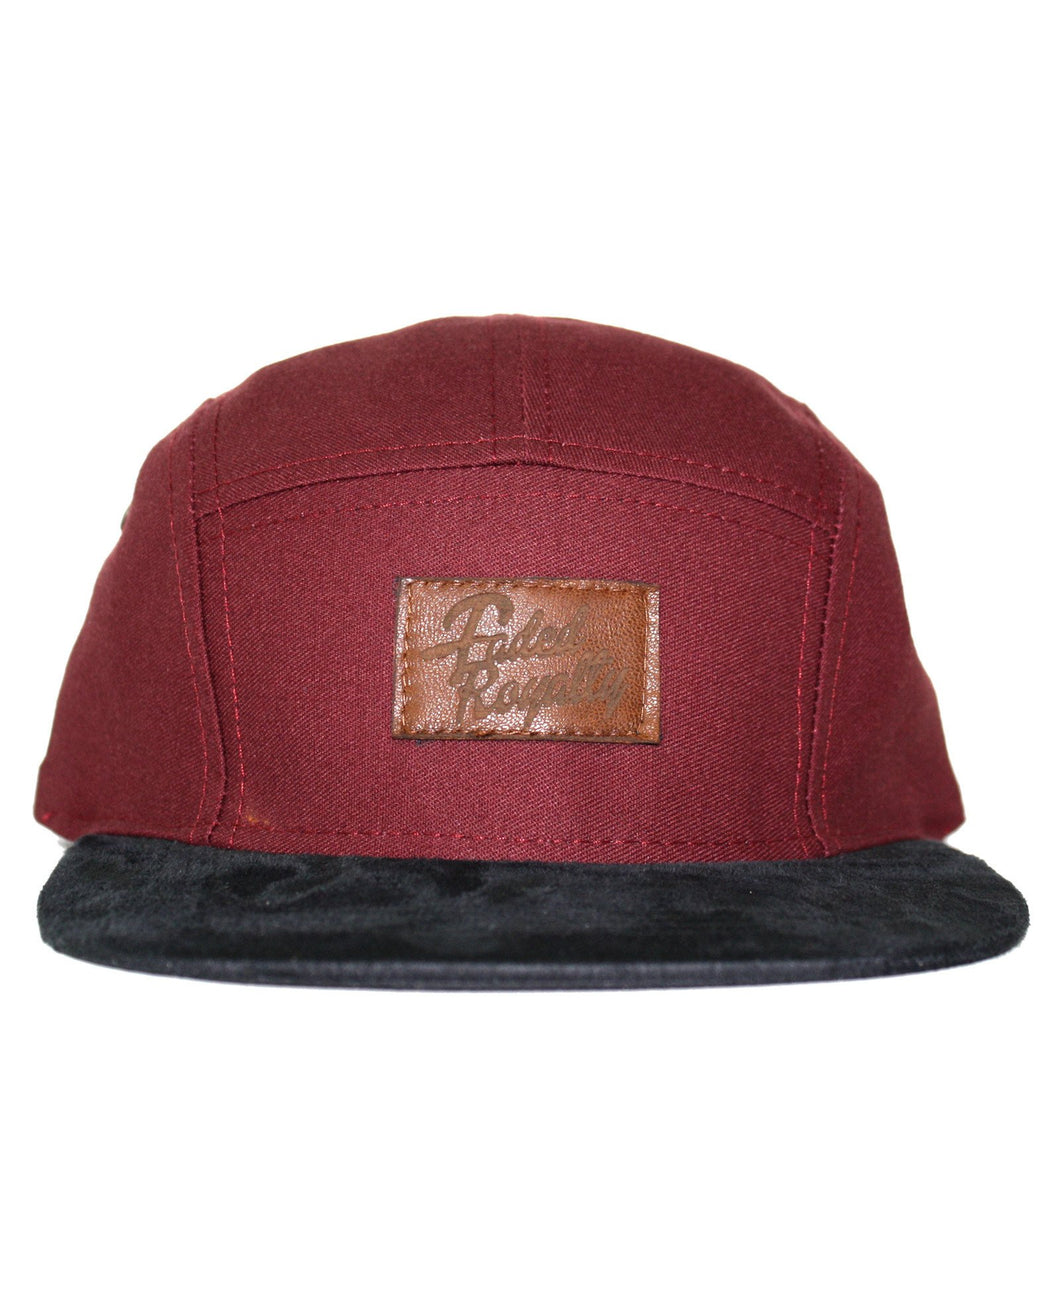 MAROON / LEATHER 5 PANEL